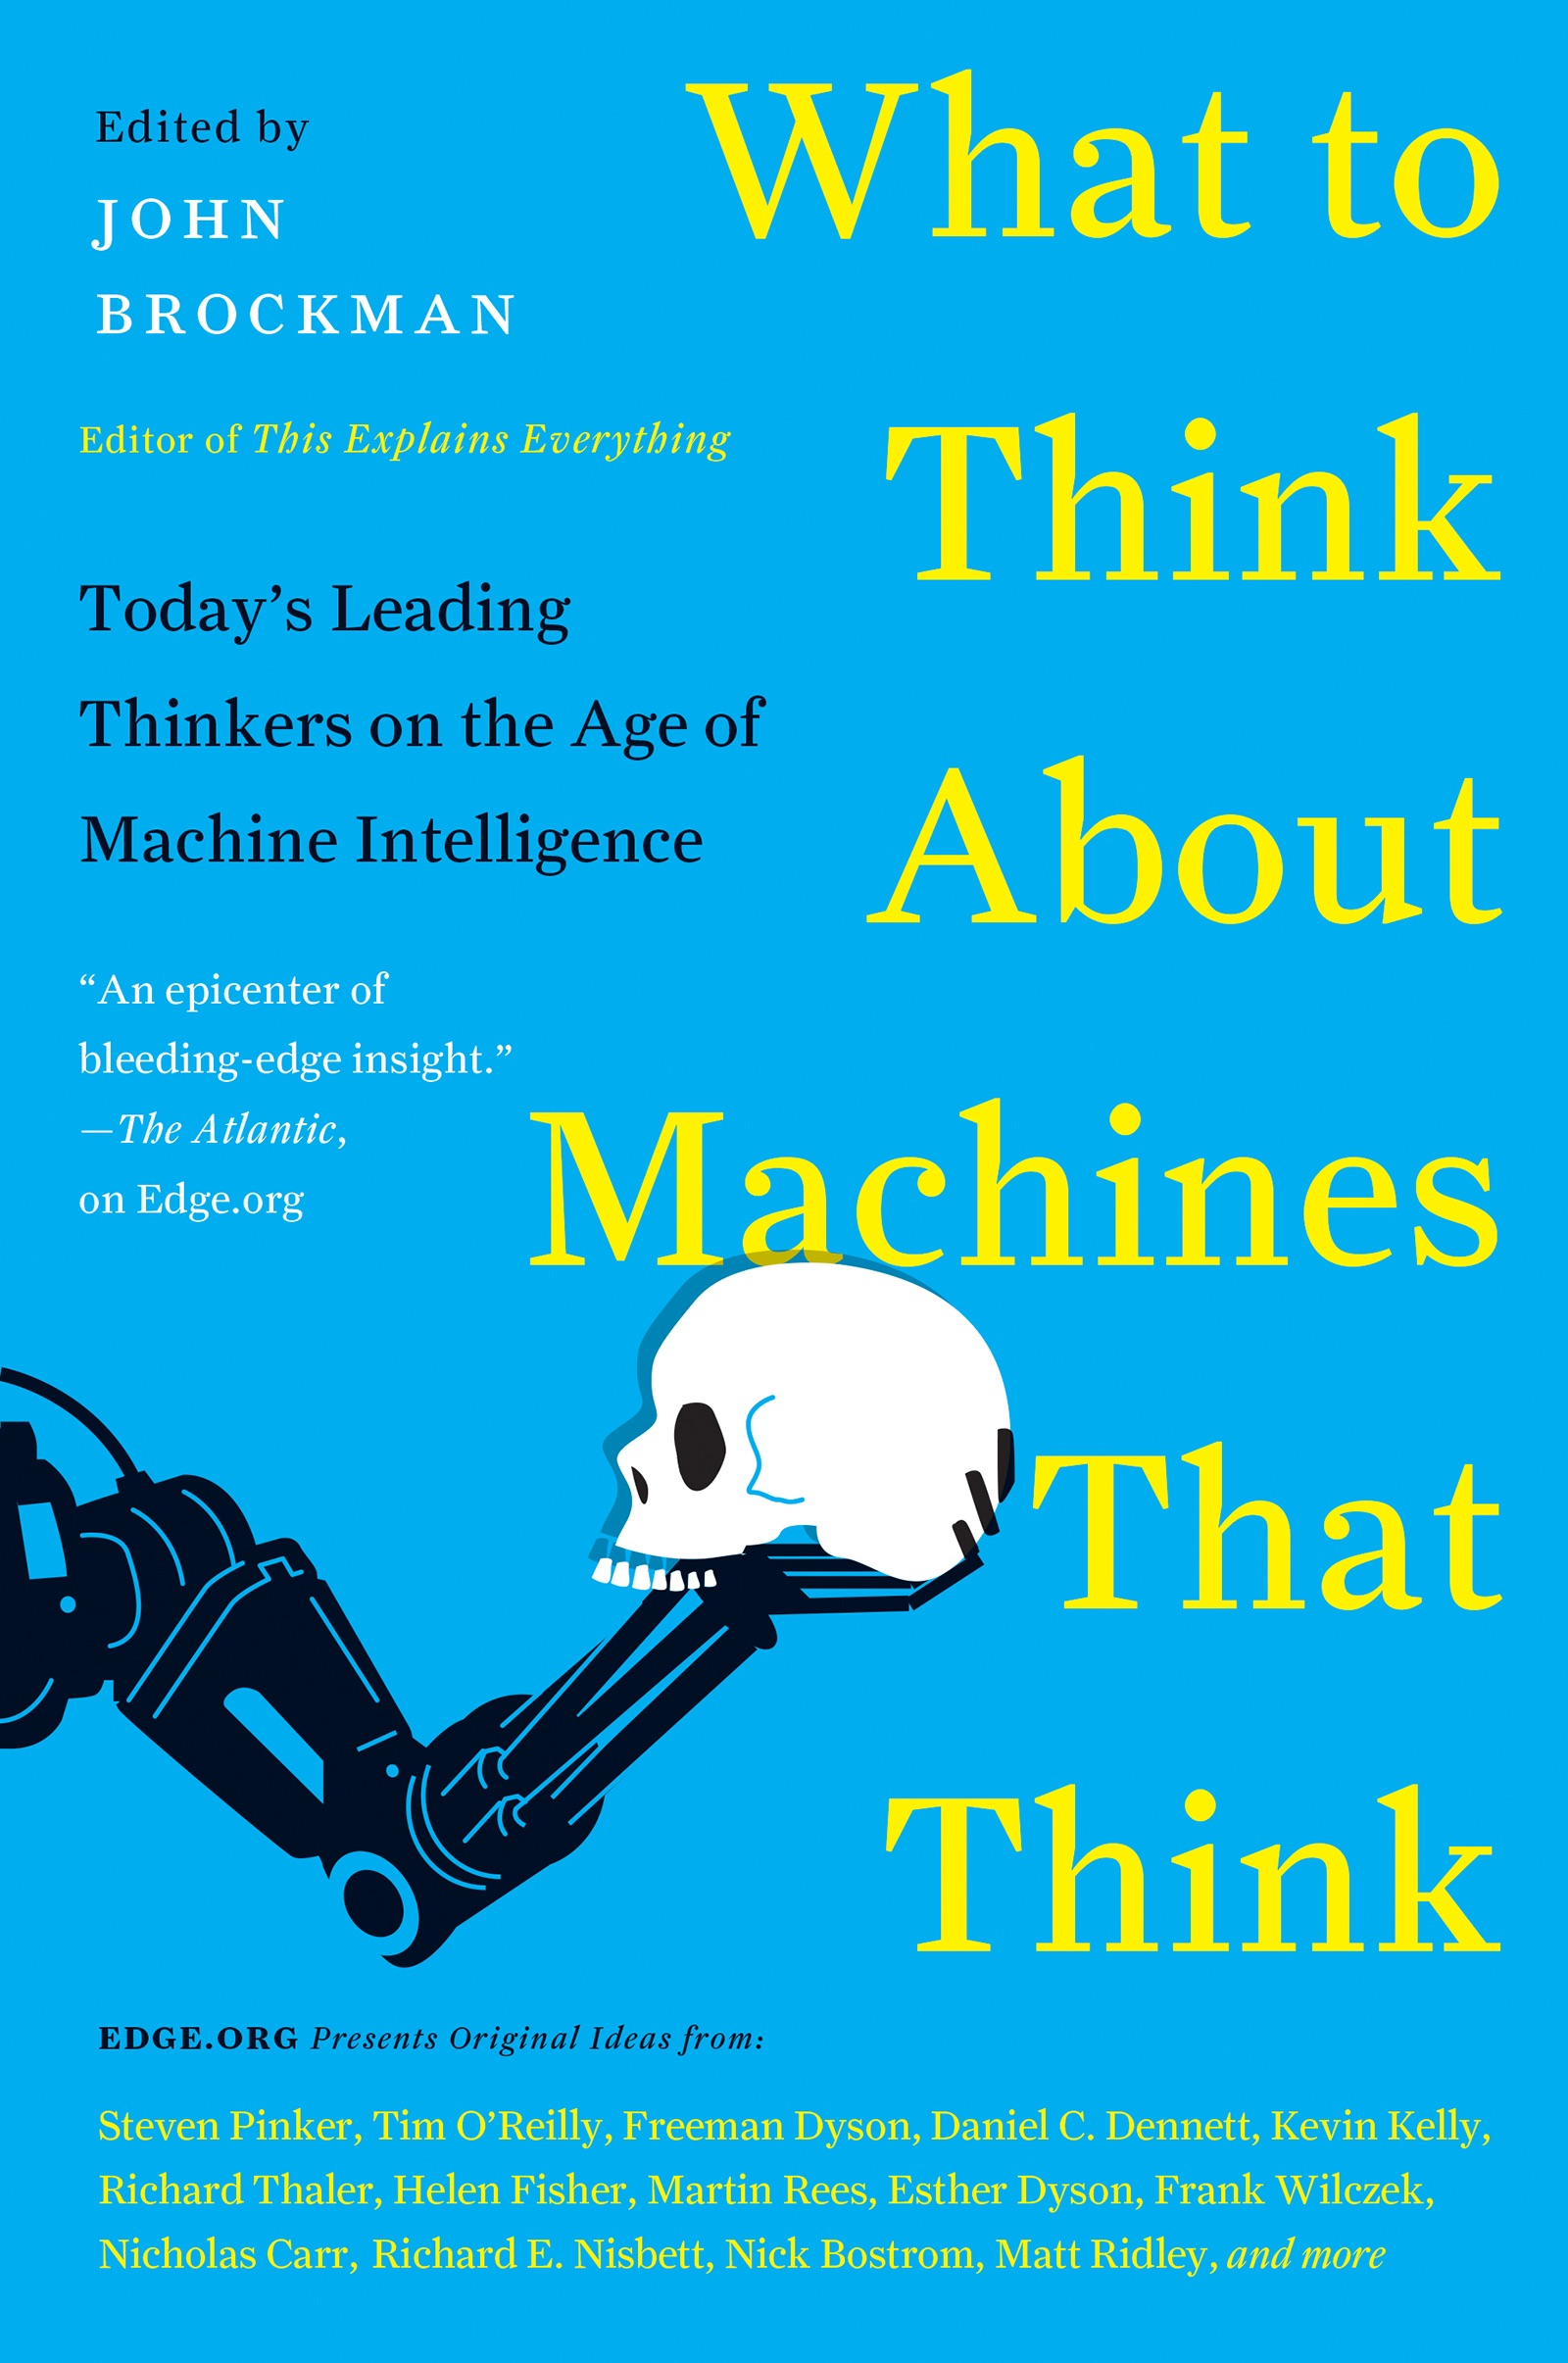 Book Cover of What to Think About Machines That Think